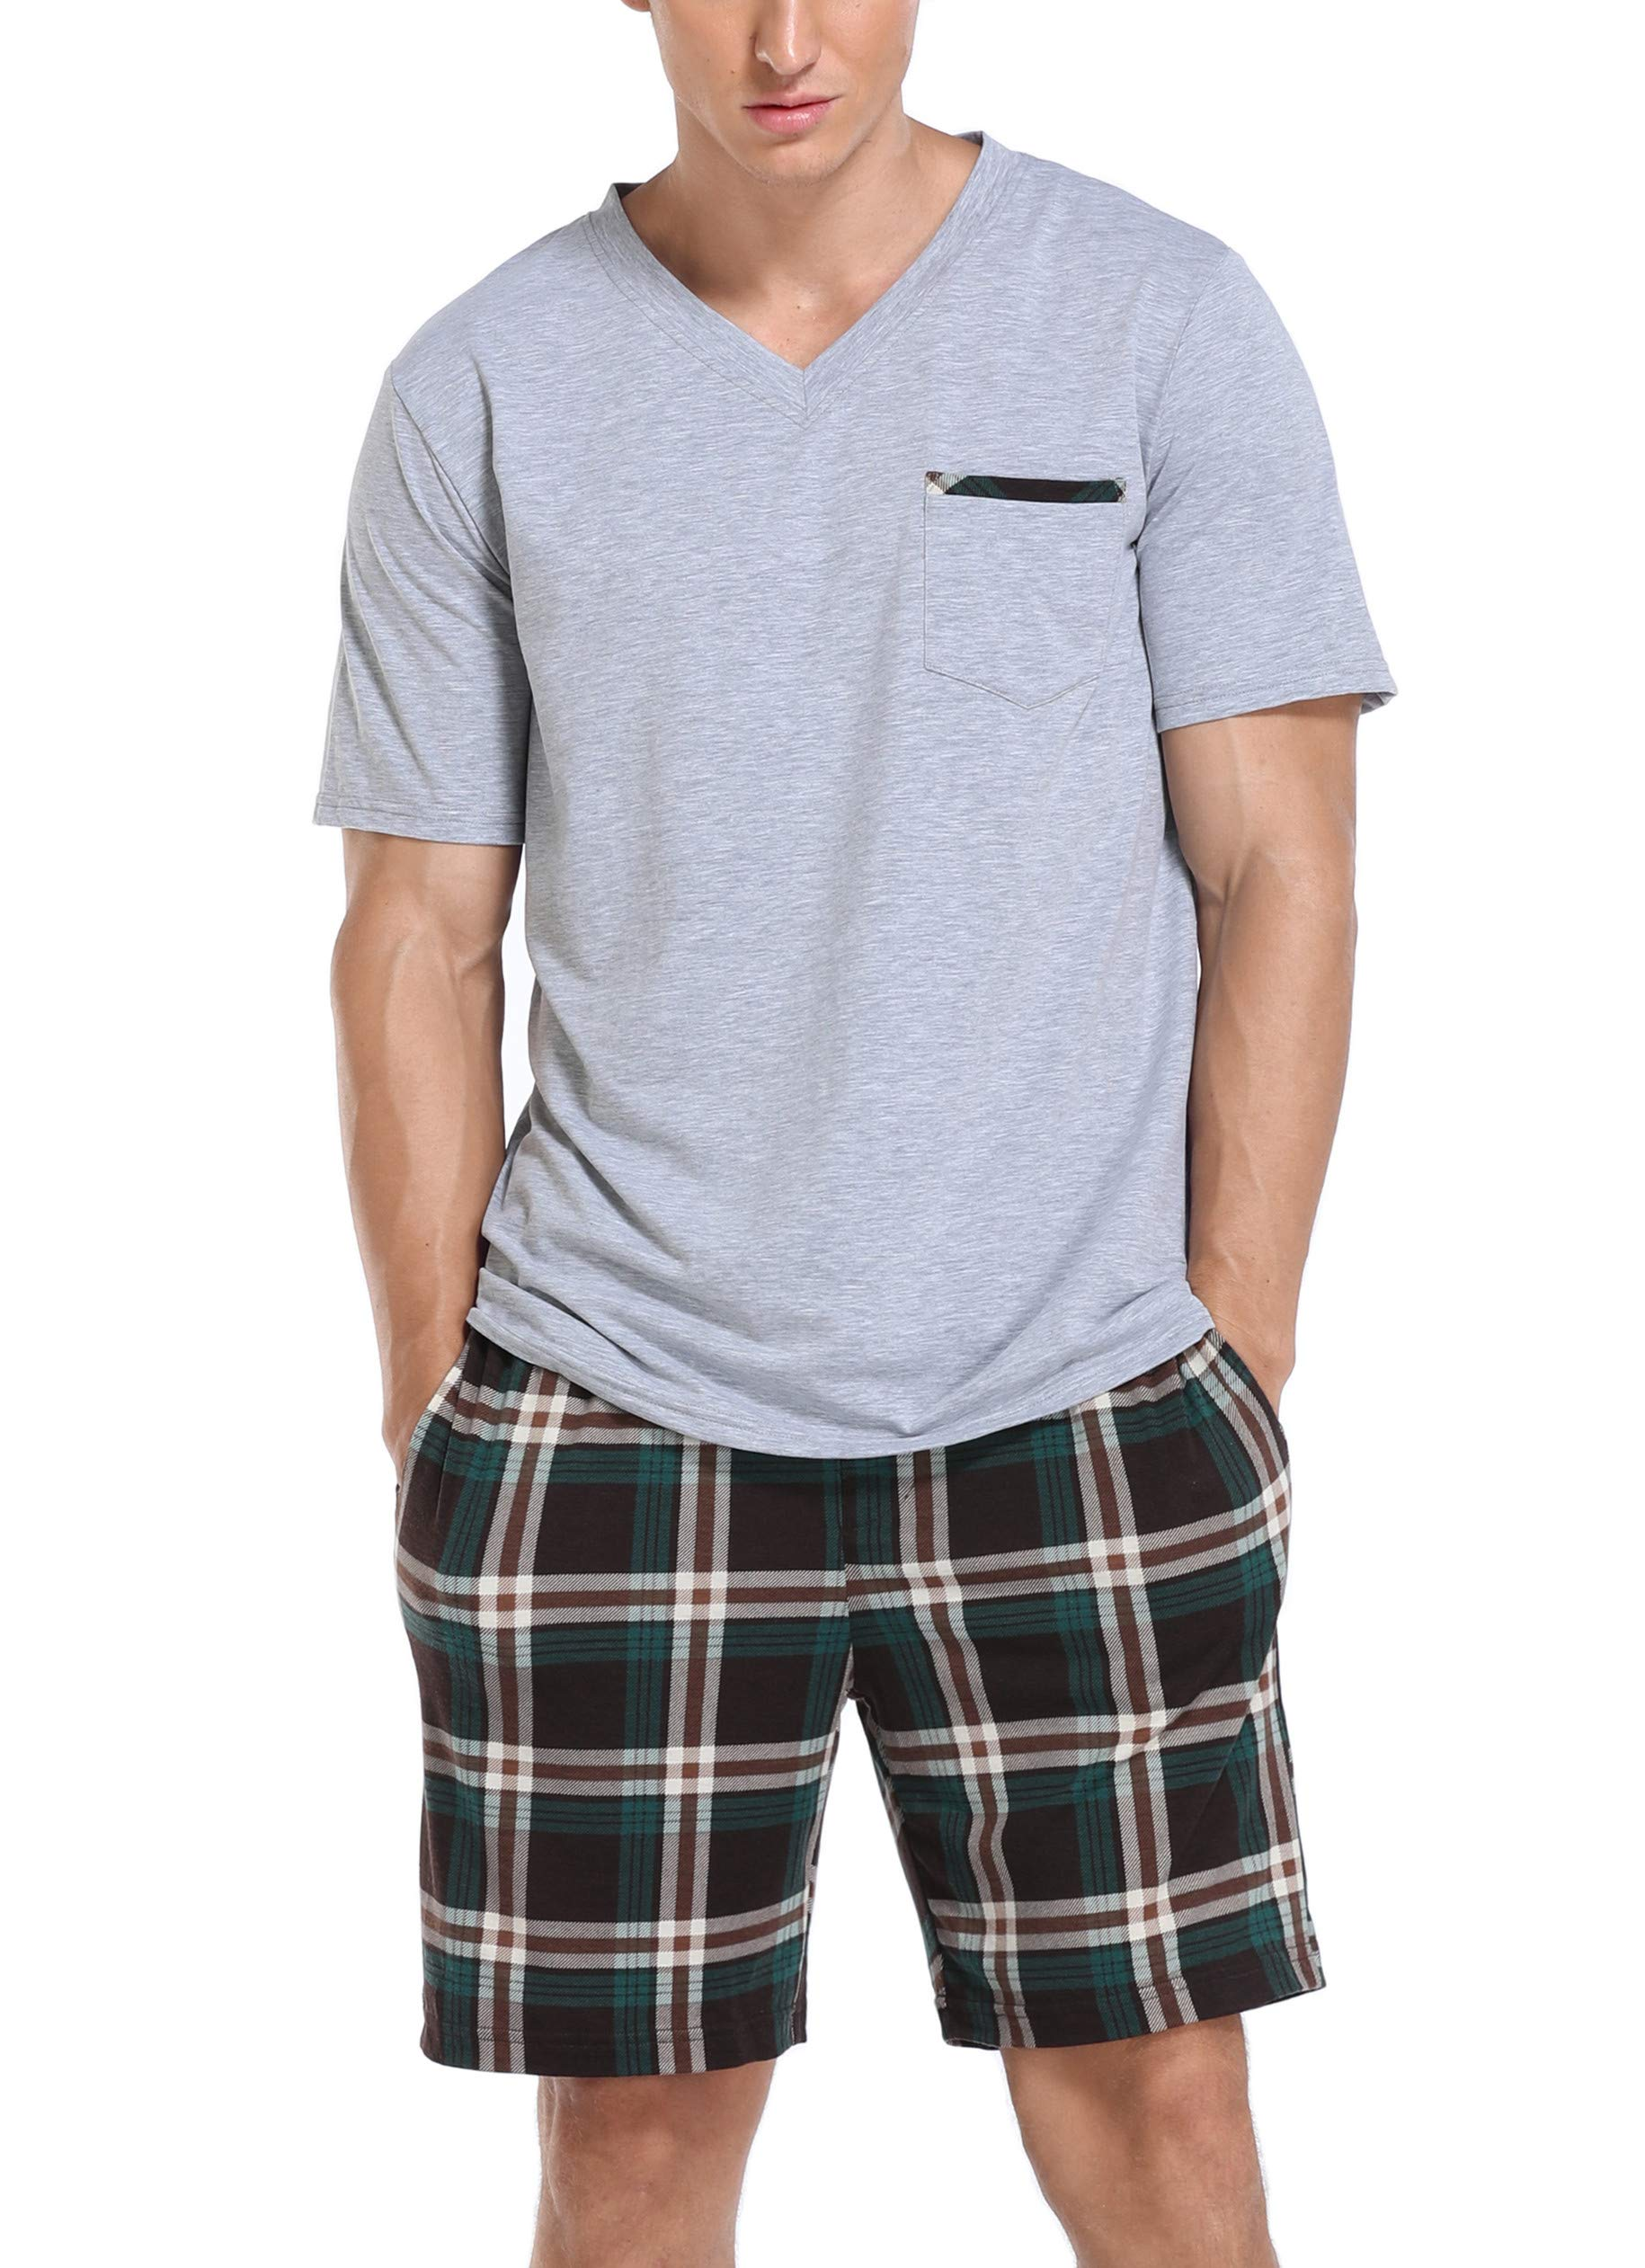 Vlazom Men's Pajama Sets Short Sleeve Top and Plaid Pants for Loungewear Sleepwear